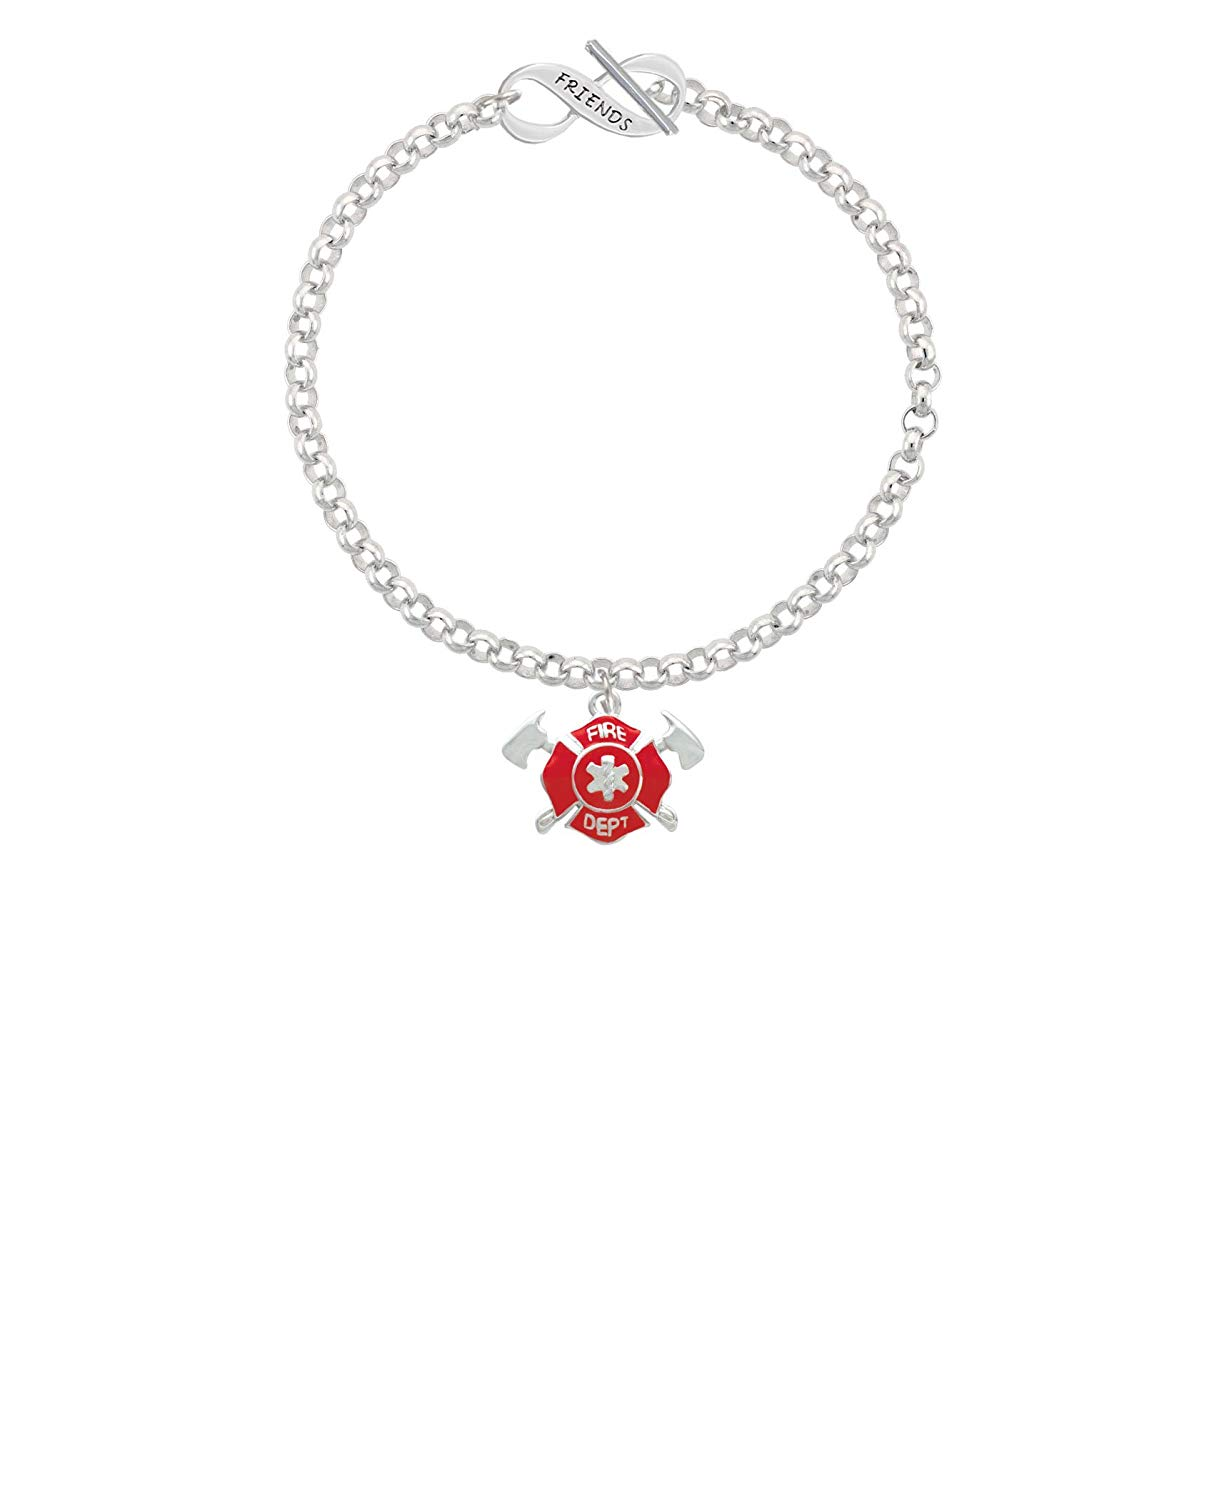 8 Silvertone Red Fire Department Shield with Axes Love Infinity Toggle Chain Bracelet